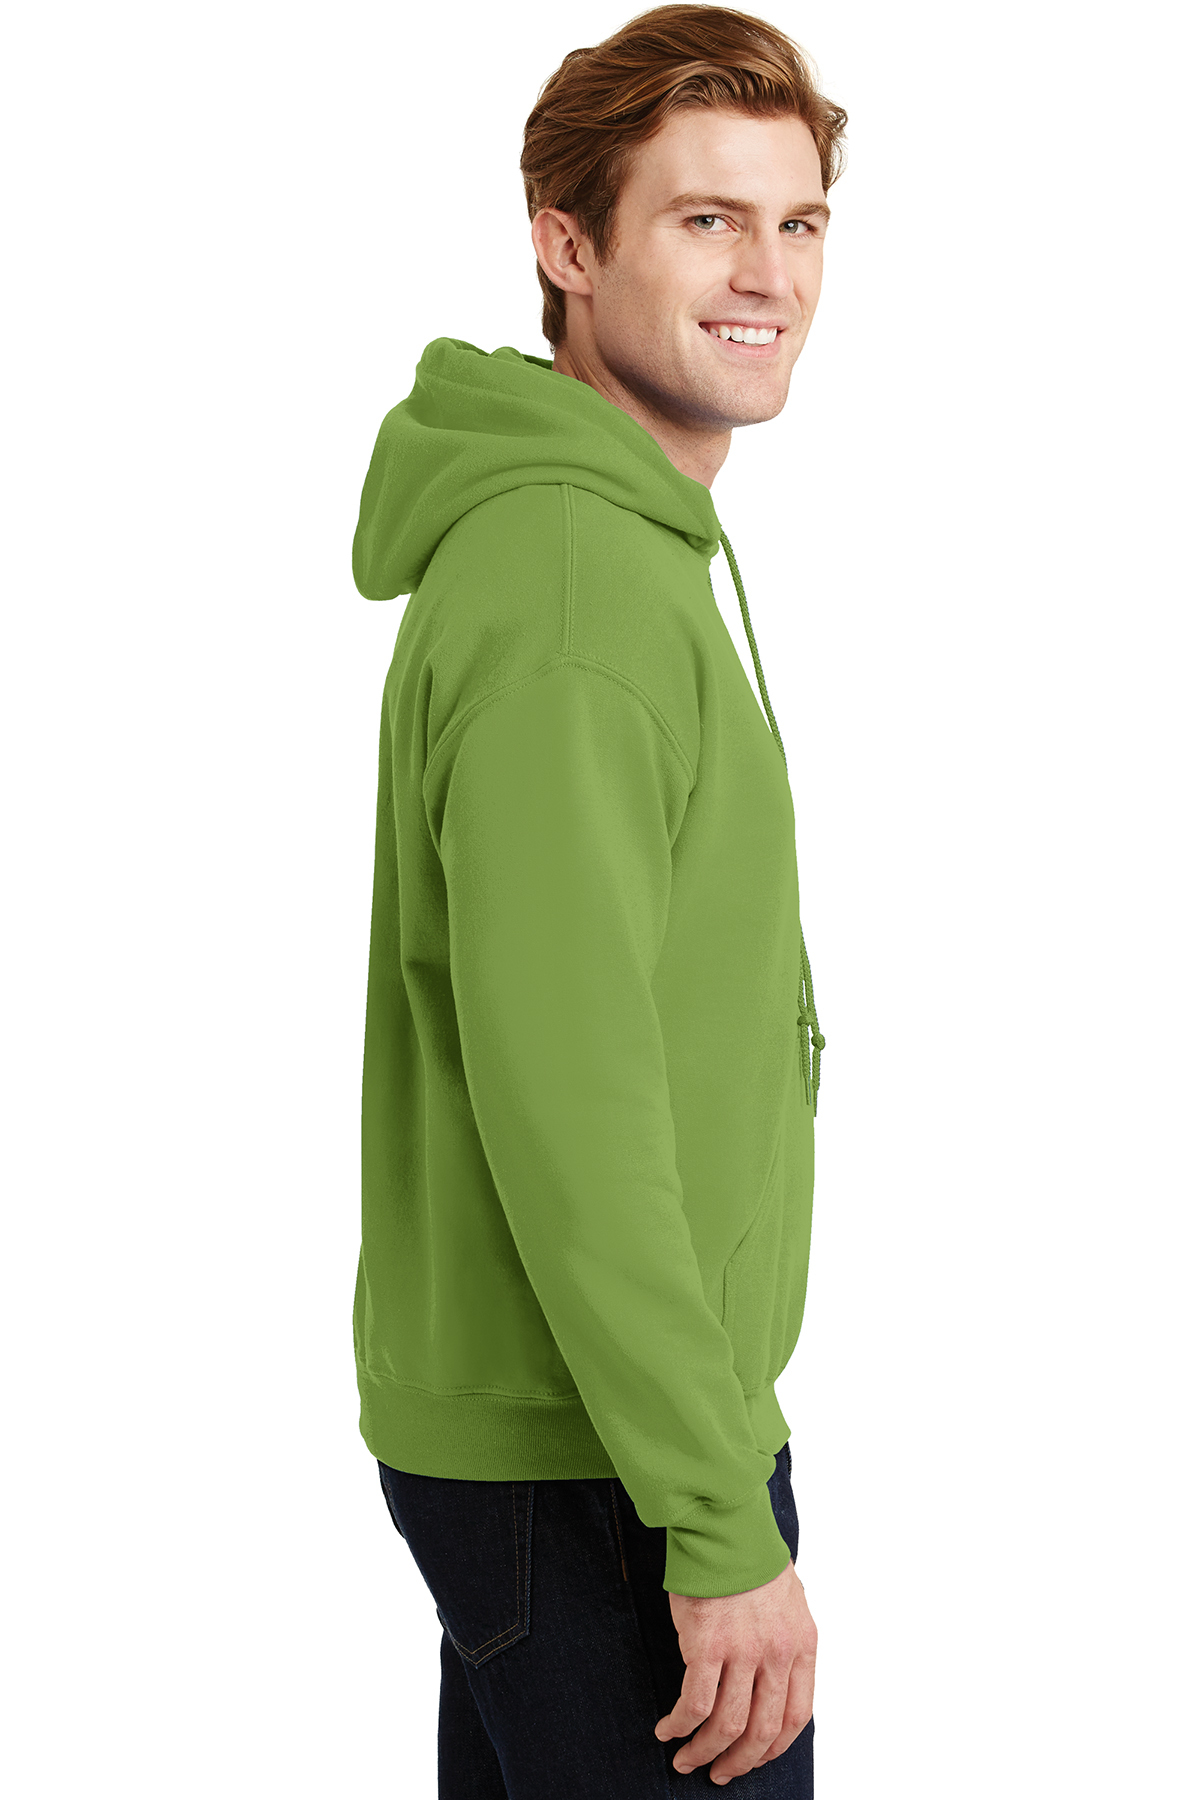 Gildan heavy blend hooded sweatshirt gildan brands sanmar a maximum of 8 logos have been uploaded please remove a logo from my logos to continue nvjuhfo Images